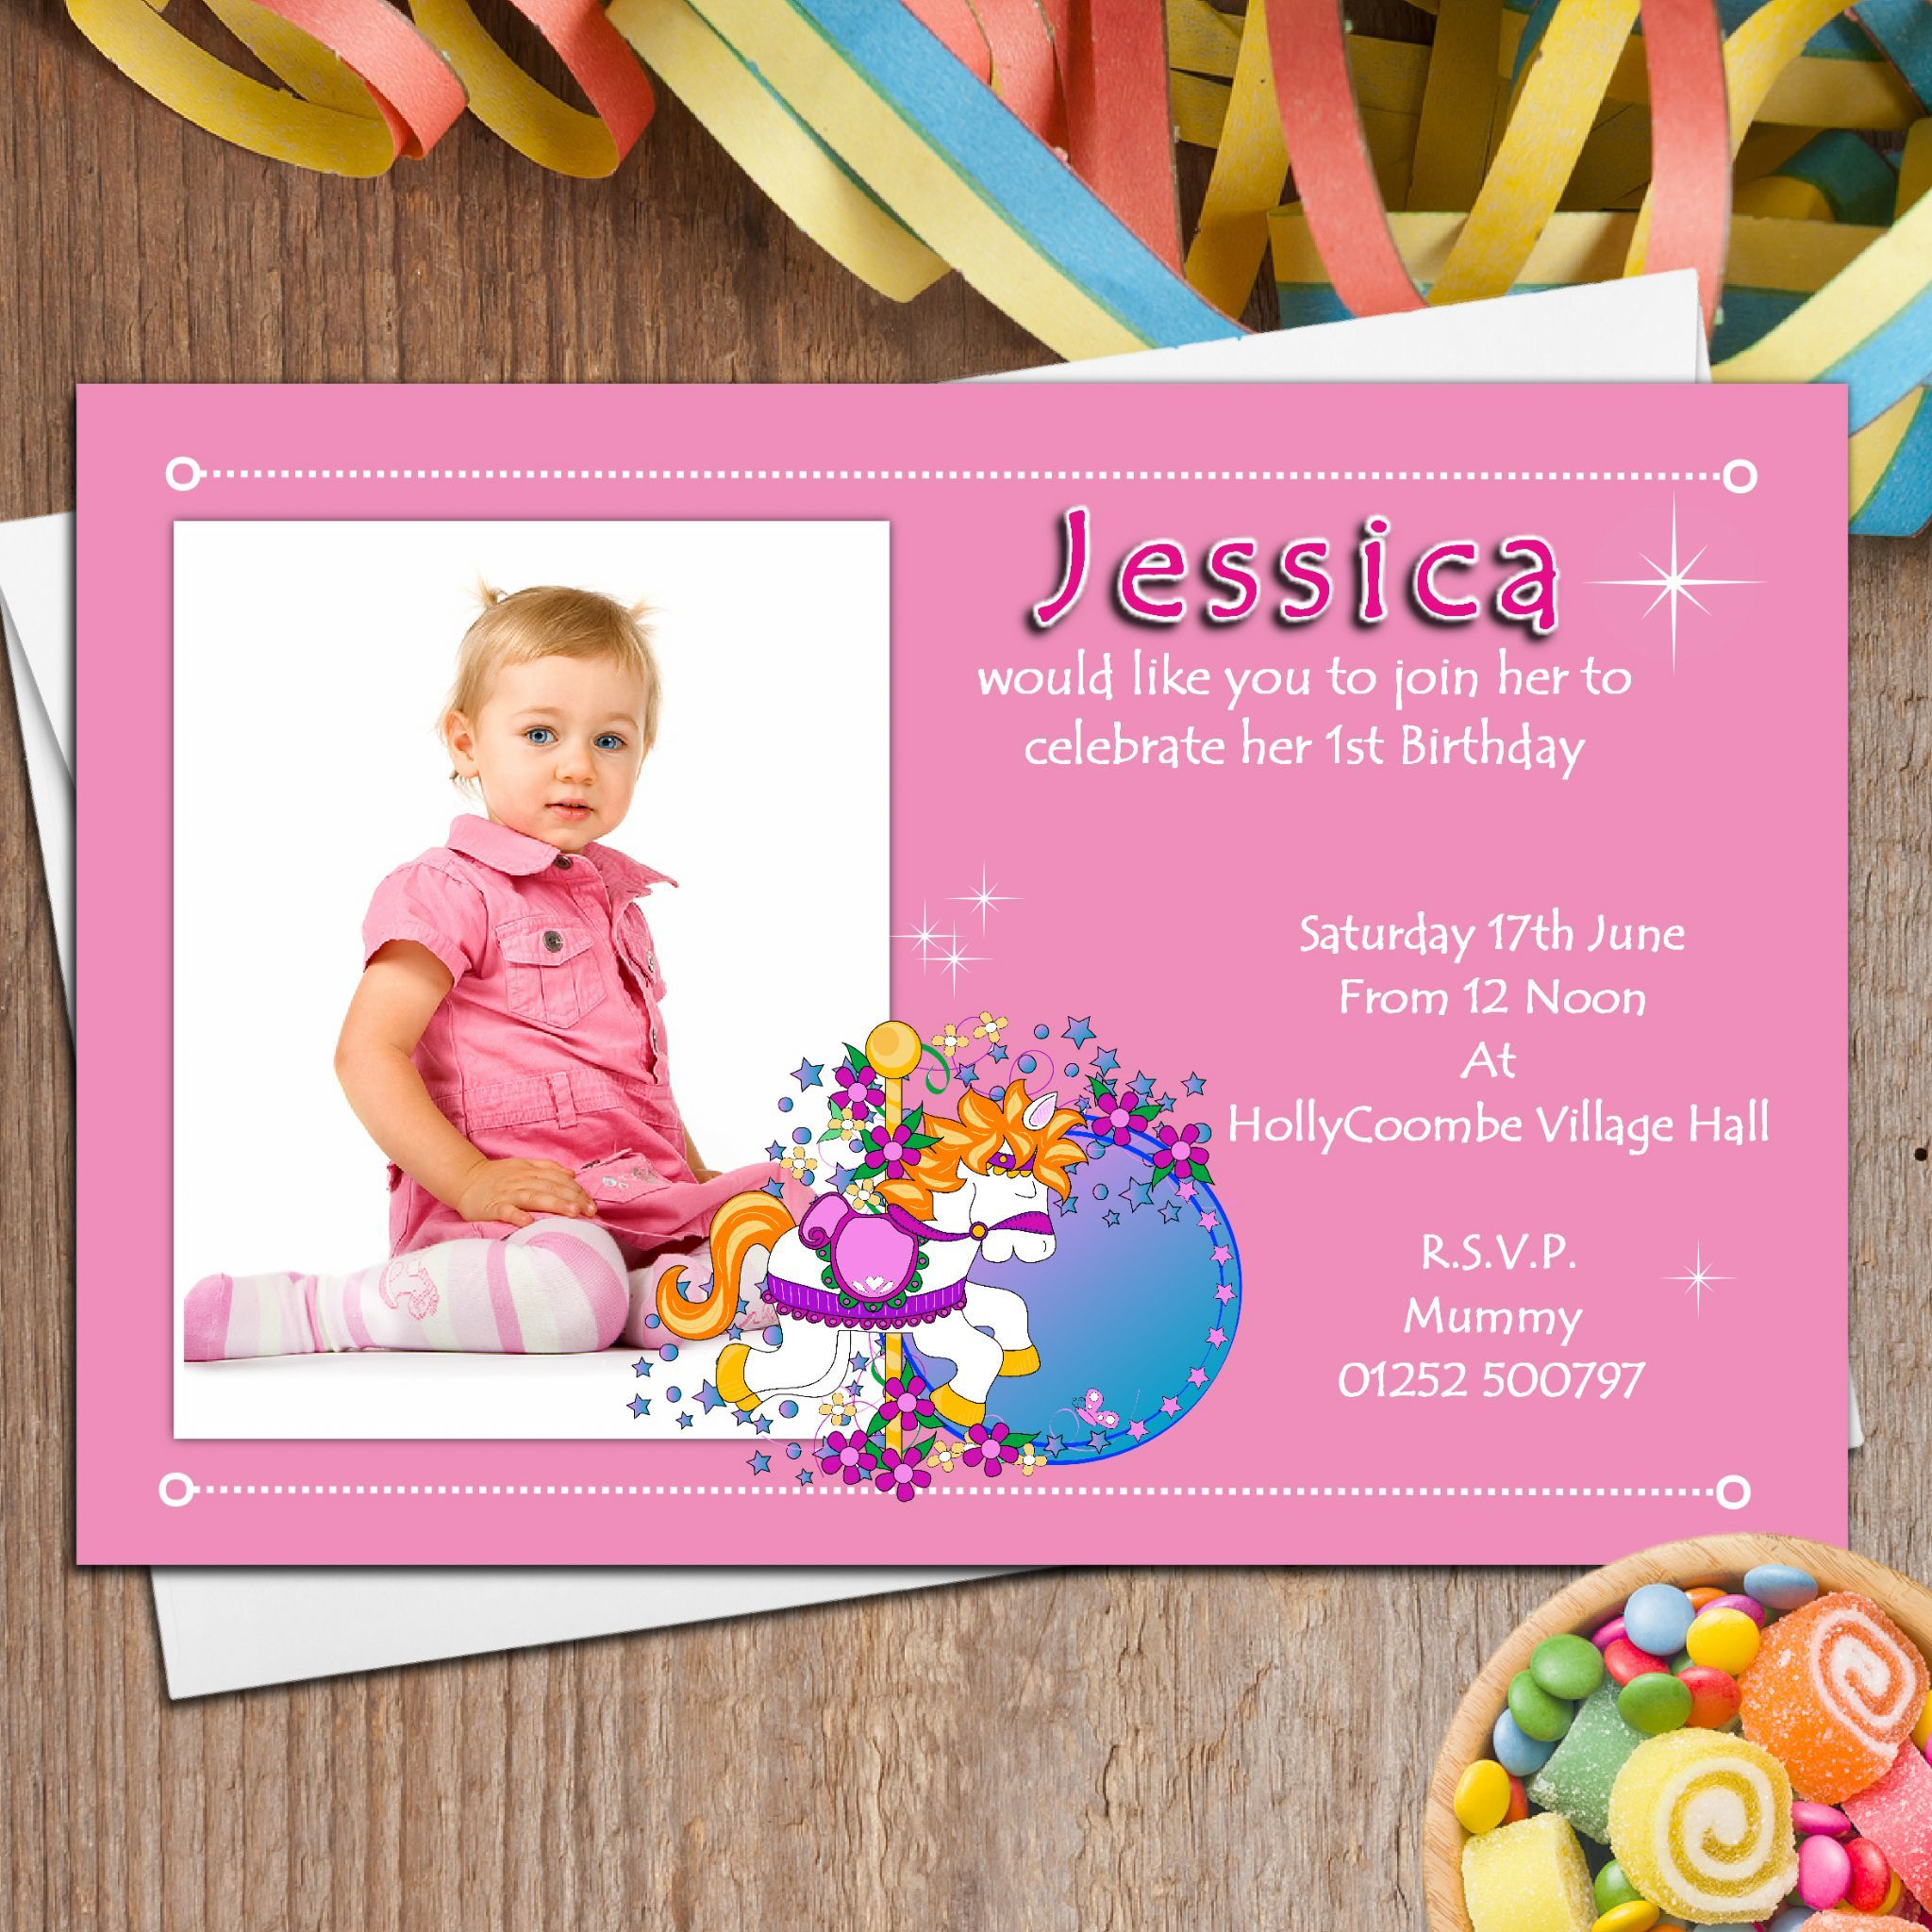 Personalized Birthday Invitations With Photo